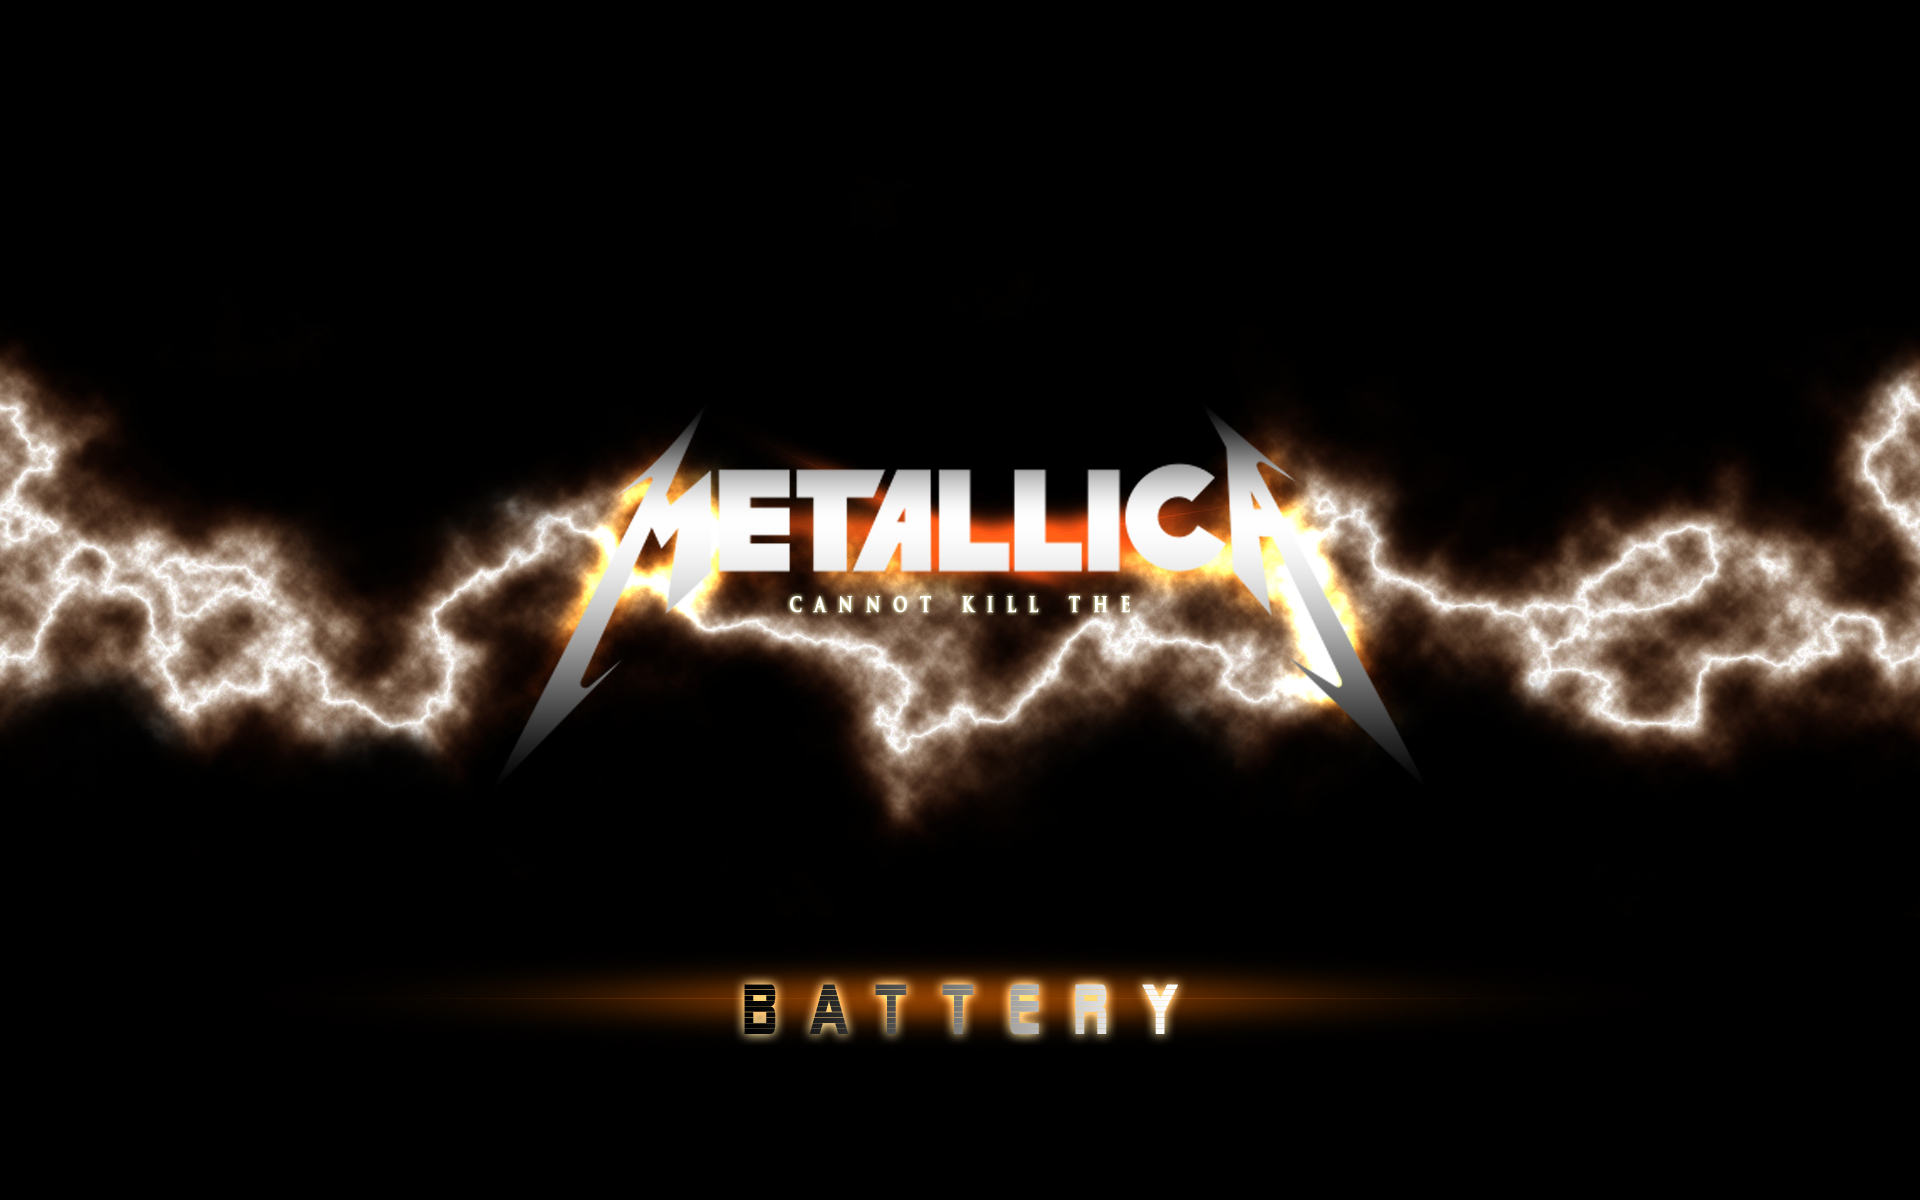 Picture Of Nike Basketball Quotes Hd Wallpapers Metallica Logo Wallpapers Pixelstalk Net